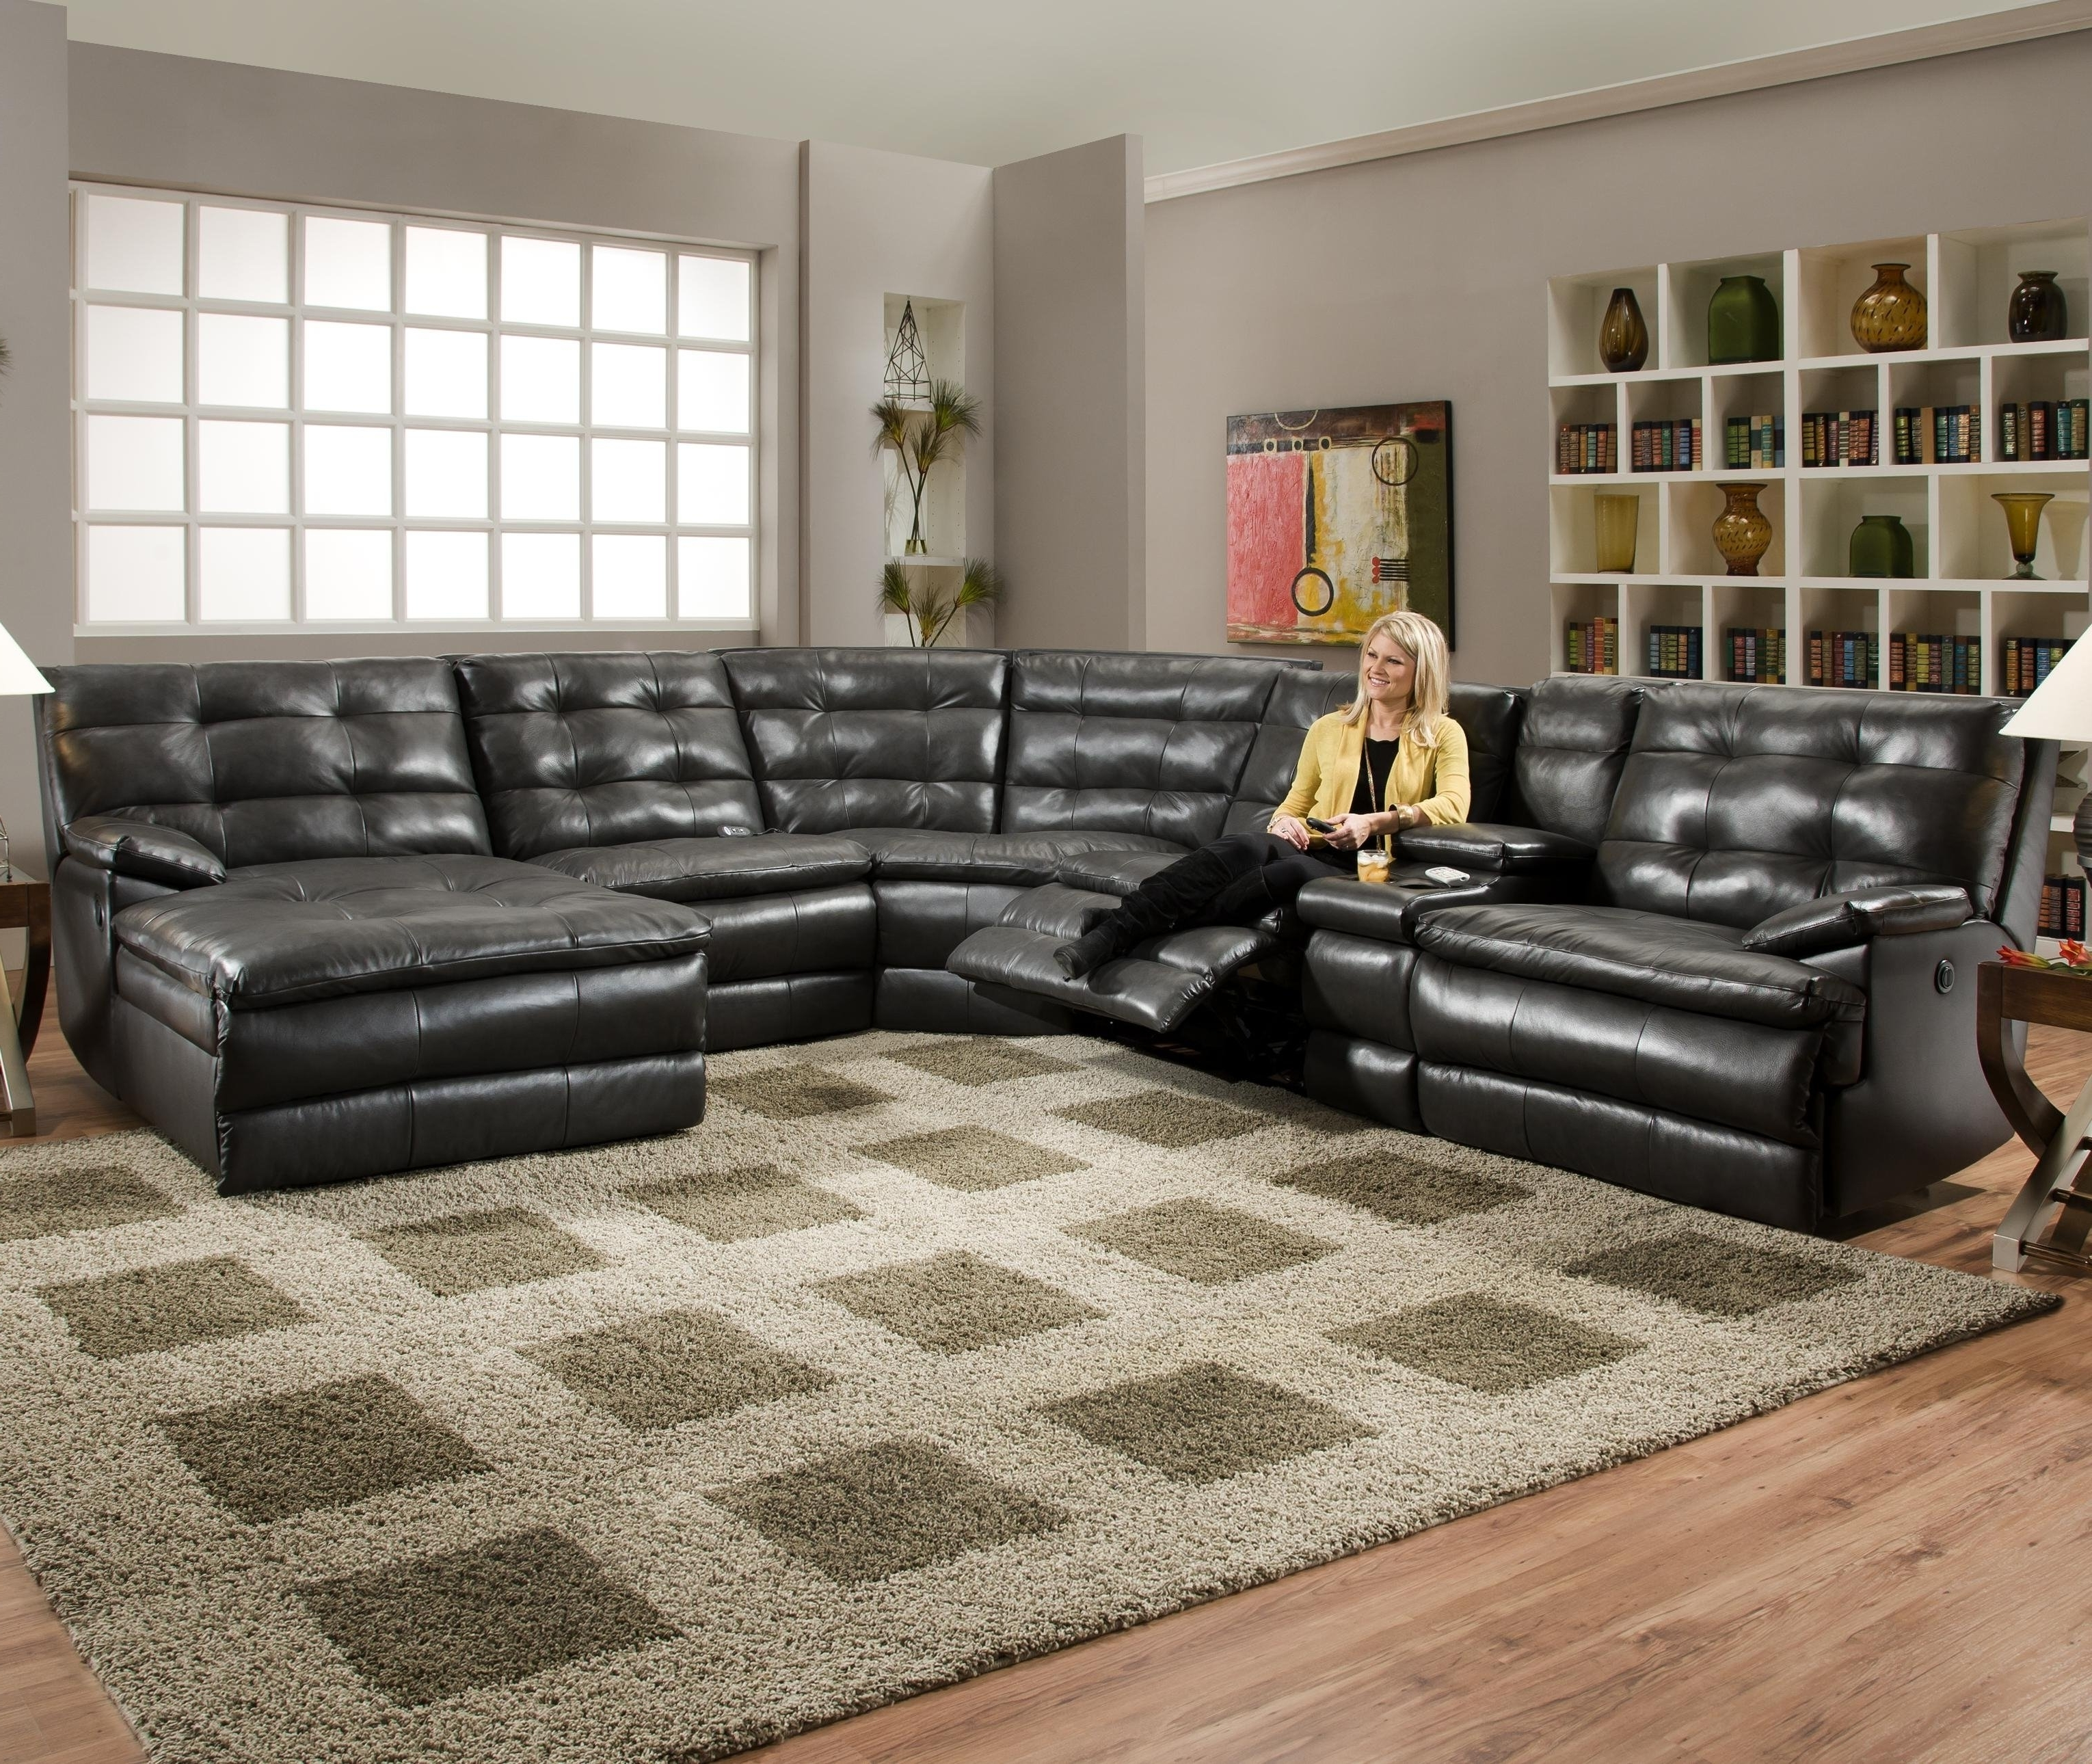 Magnificent Large Sectional Sofas — The Kienandsweet Furnitures Within Trendy Extra Large Sectional Sofas (View 19 of 20)